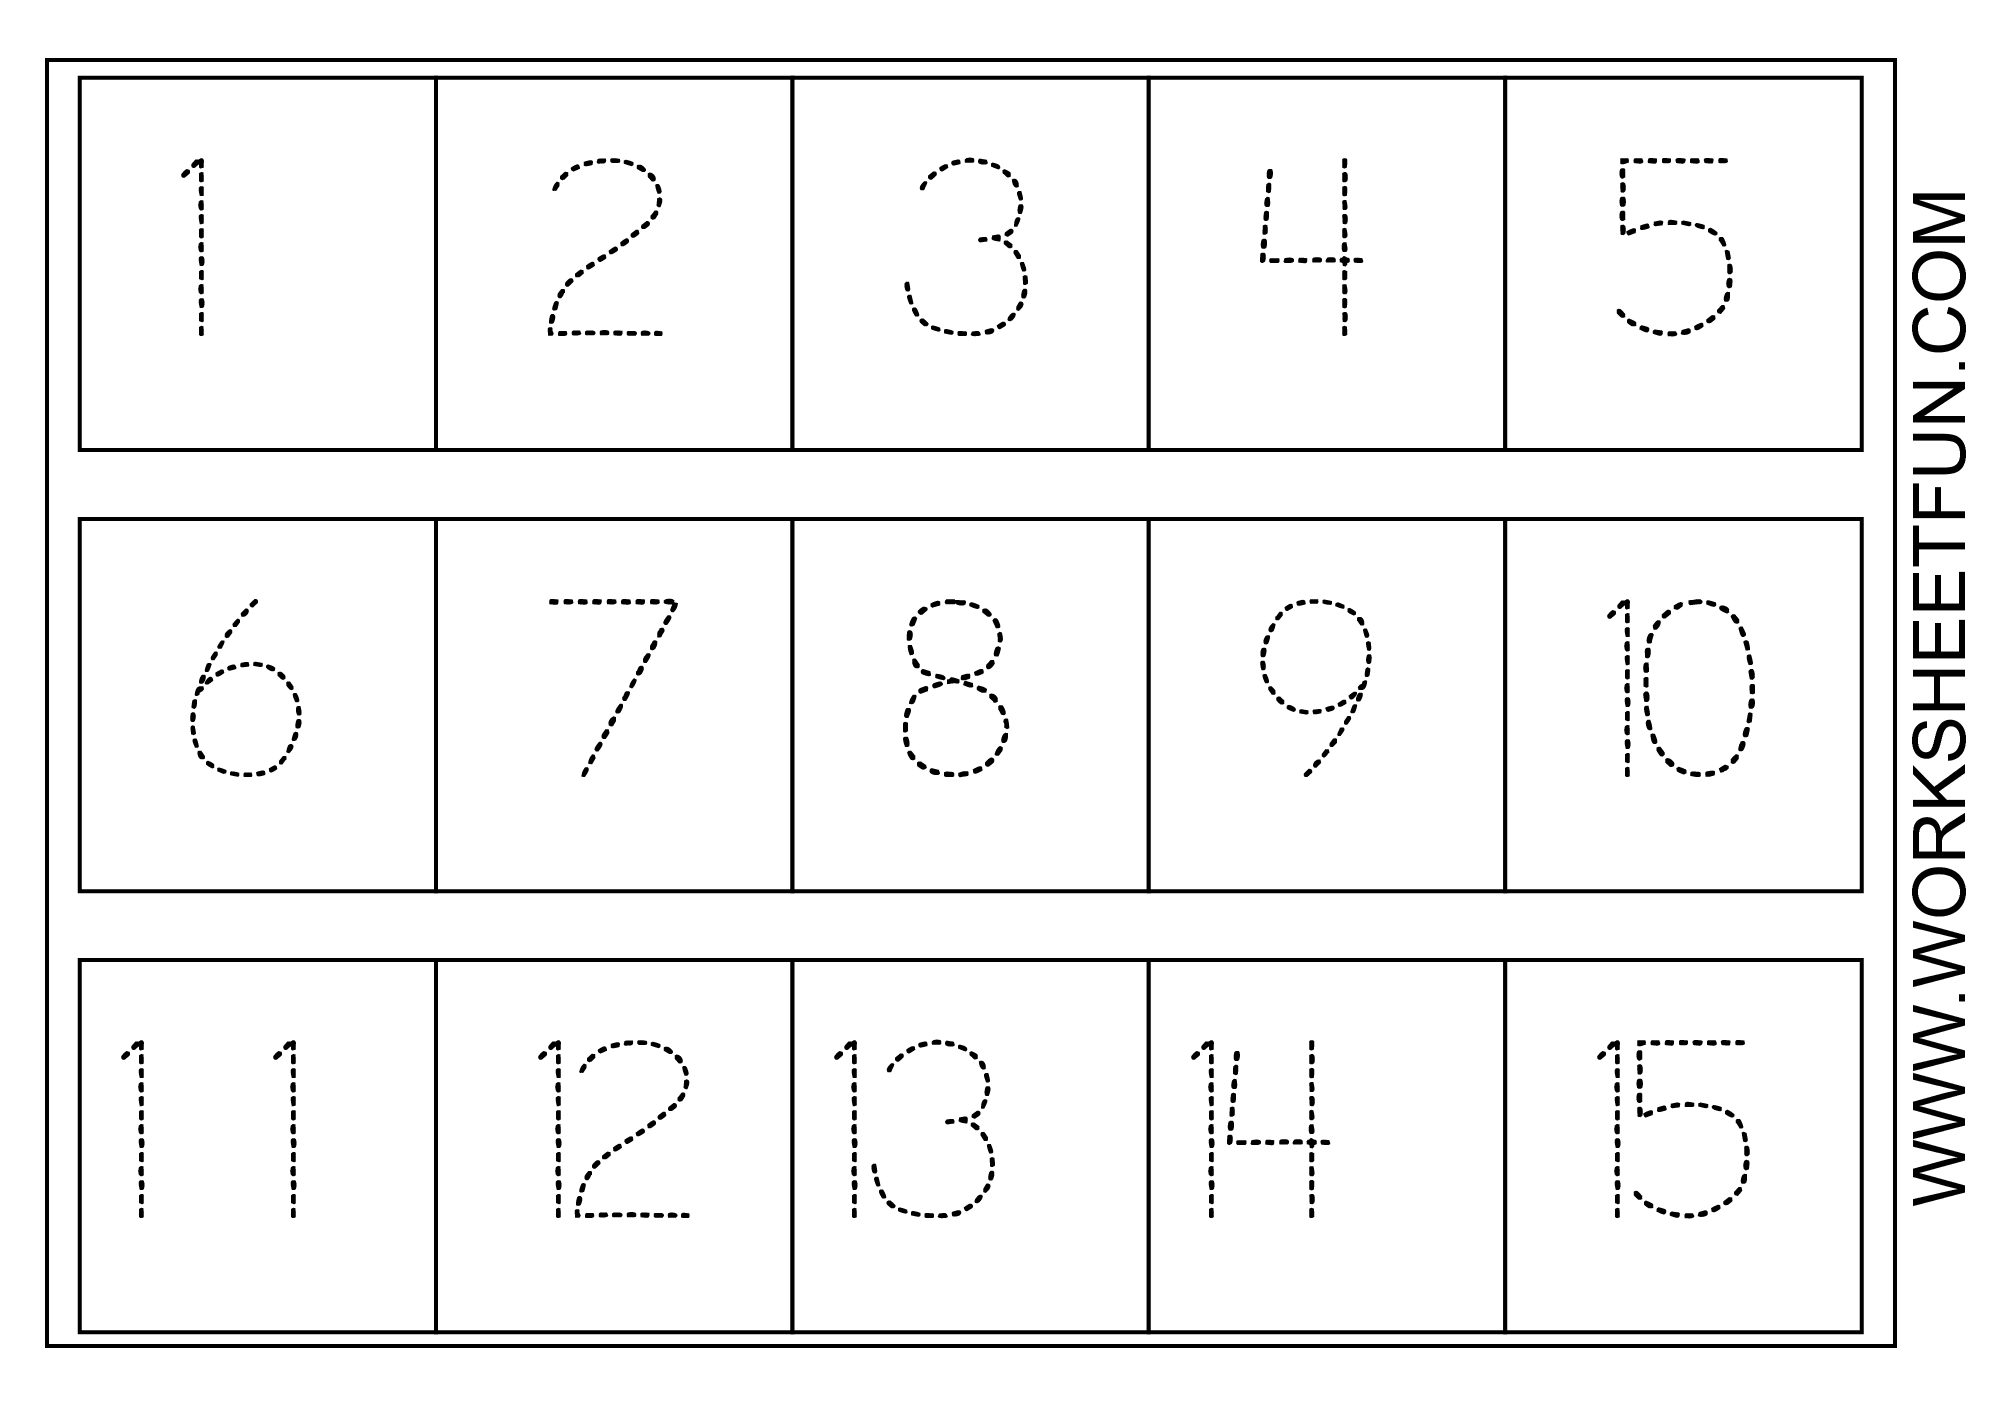 worksheet Numbers Worksheets For Preschool number worksheet preschool abitlikethis numbers worksheets for for